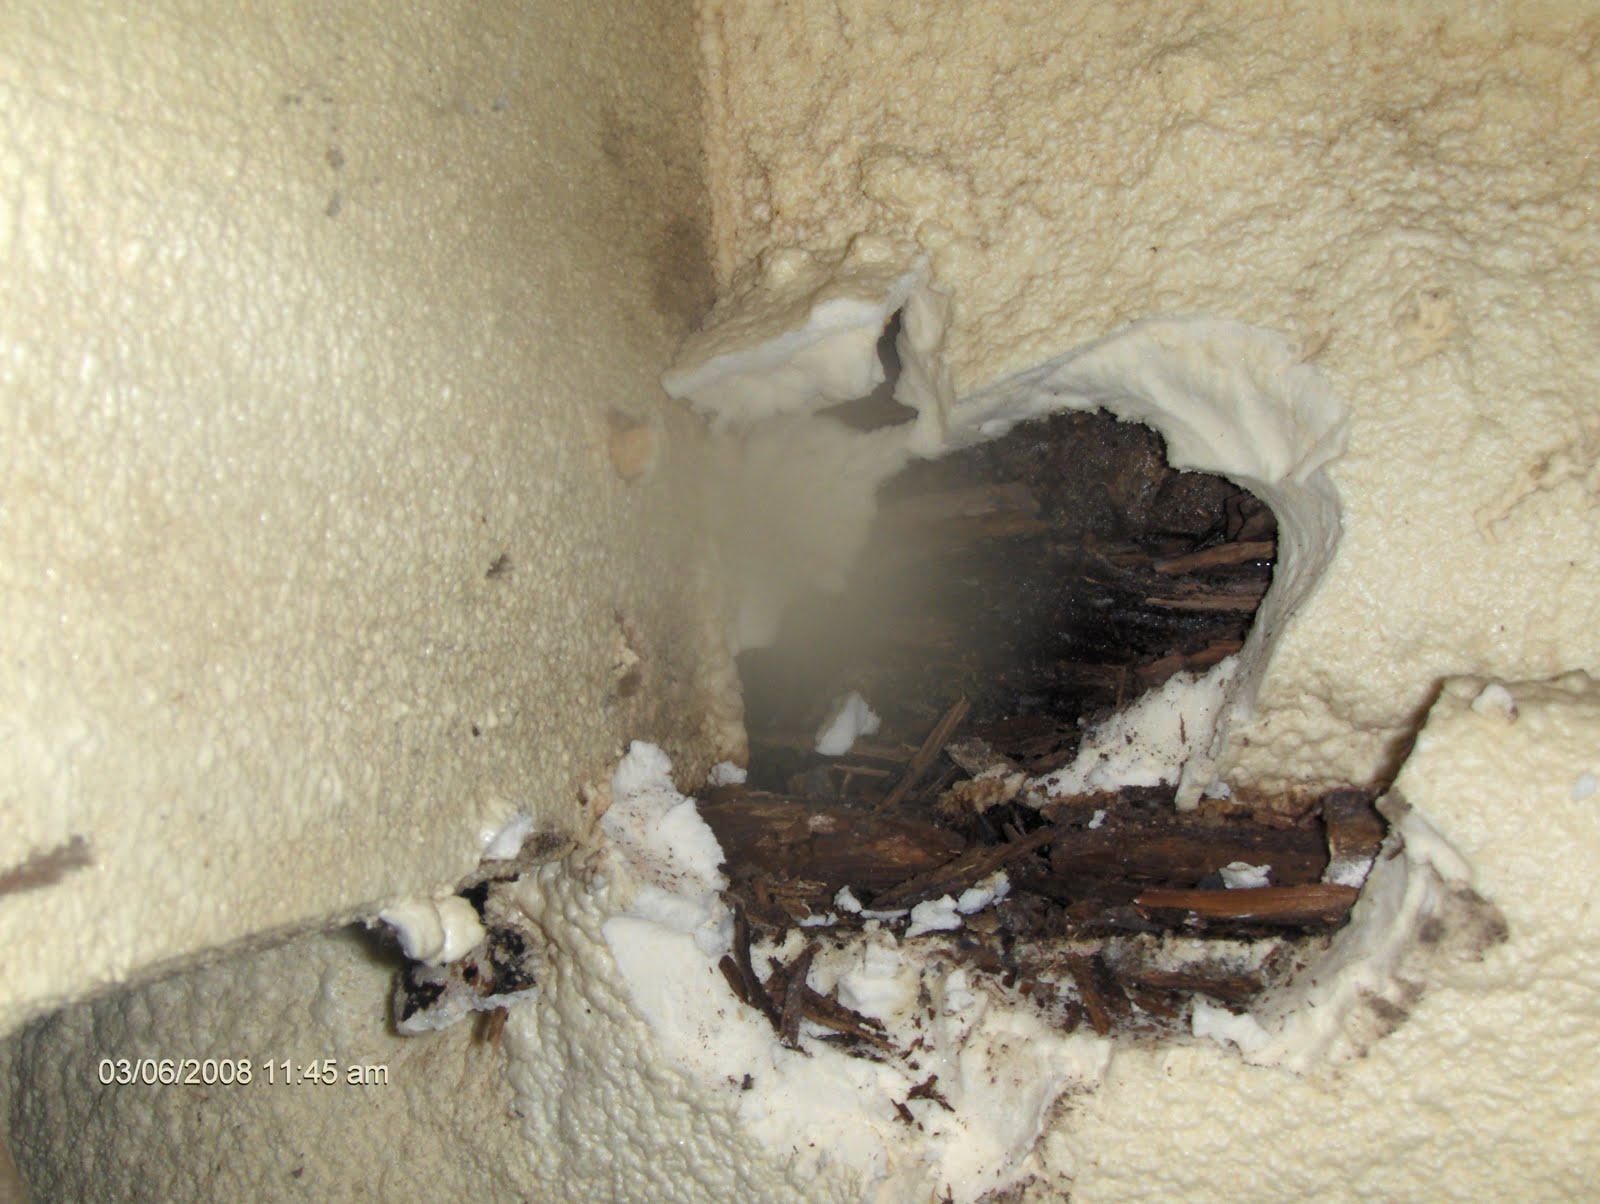 Spray foam insulation problems - Just To Be Clear Every Crawlspace Has Different Amounts Of Moisture Intrusion And Some With Lower Levels May Never Have Wood Rot Occur